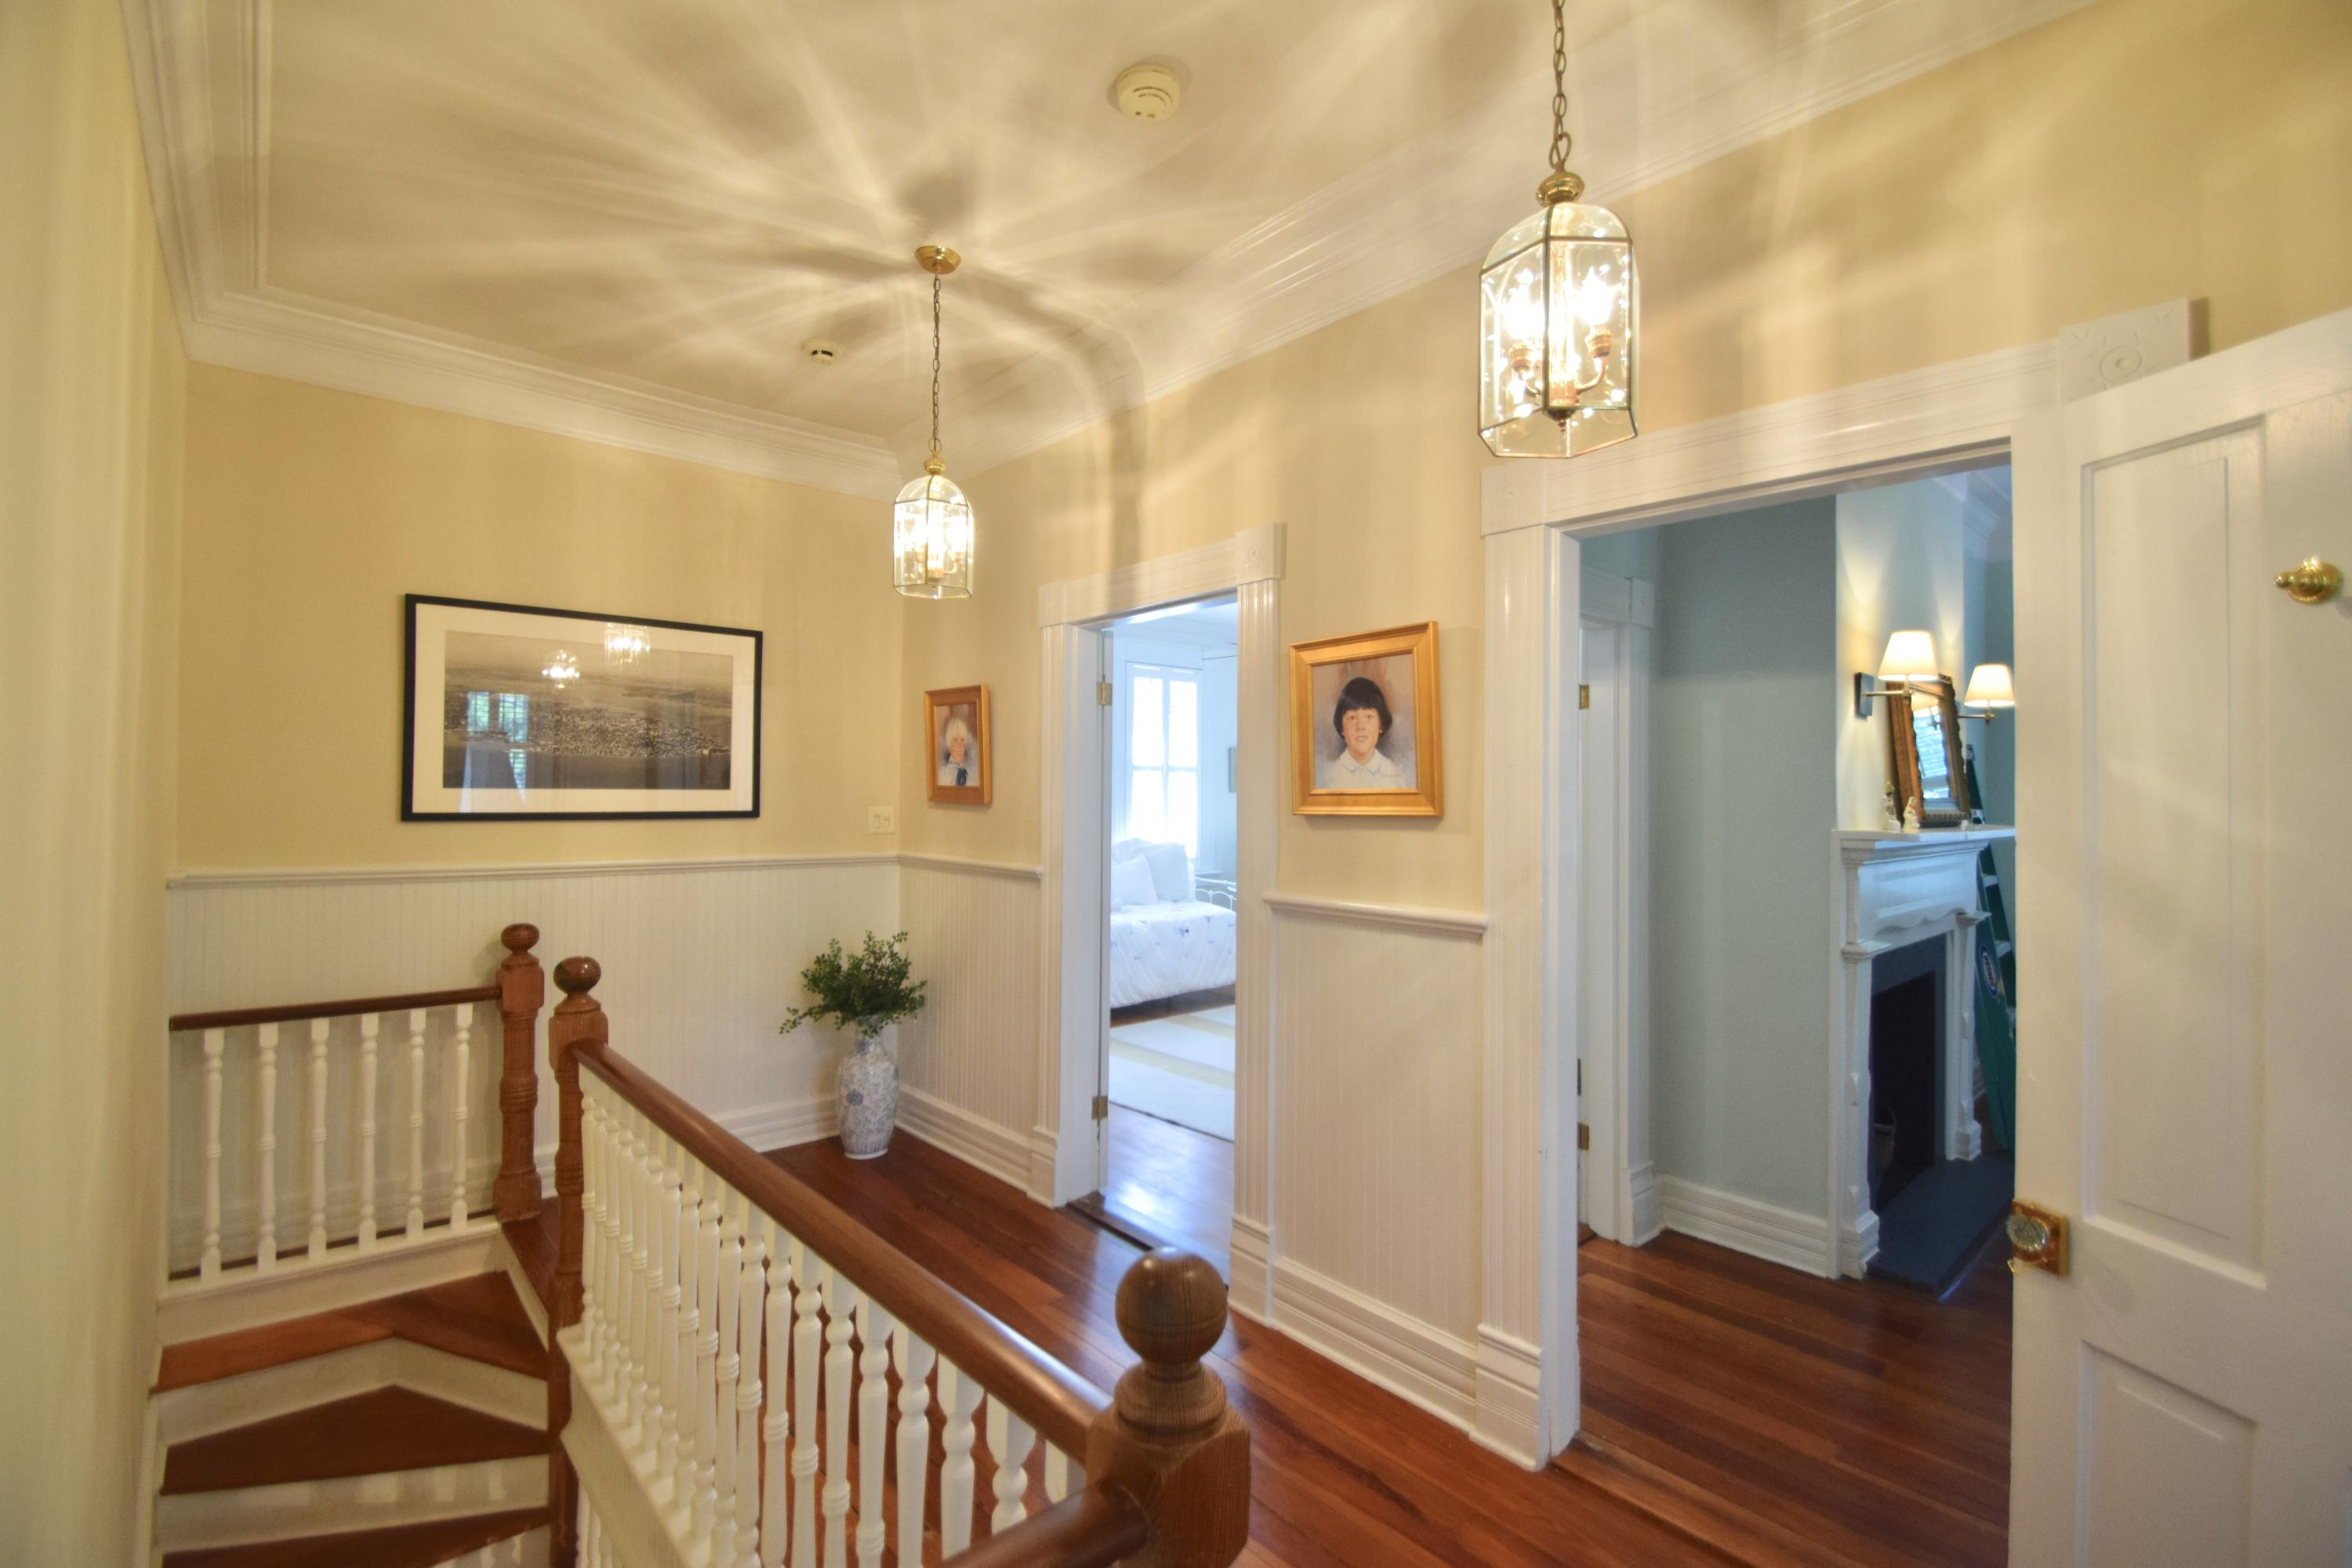 Photo of 108 E Carolina Ave, Summerville, SC 29483